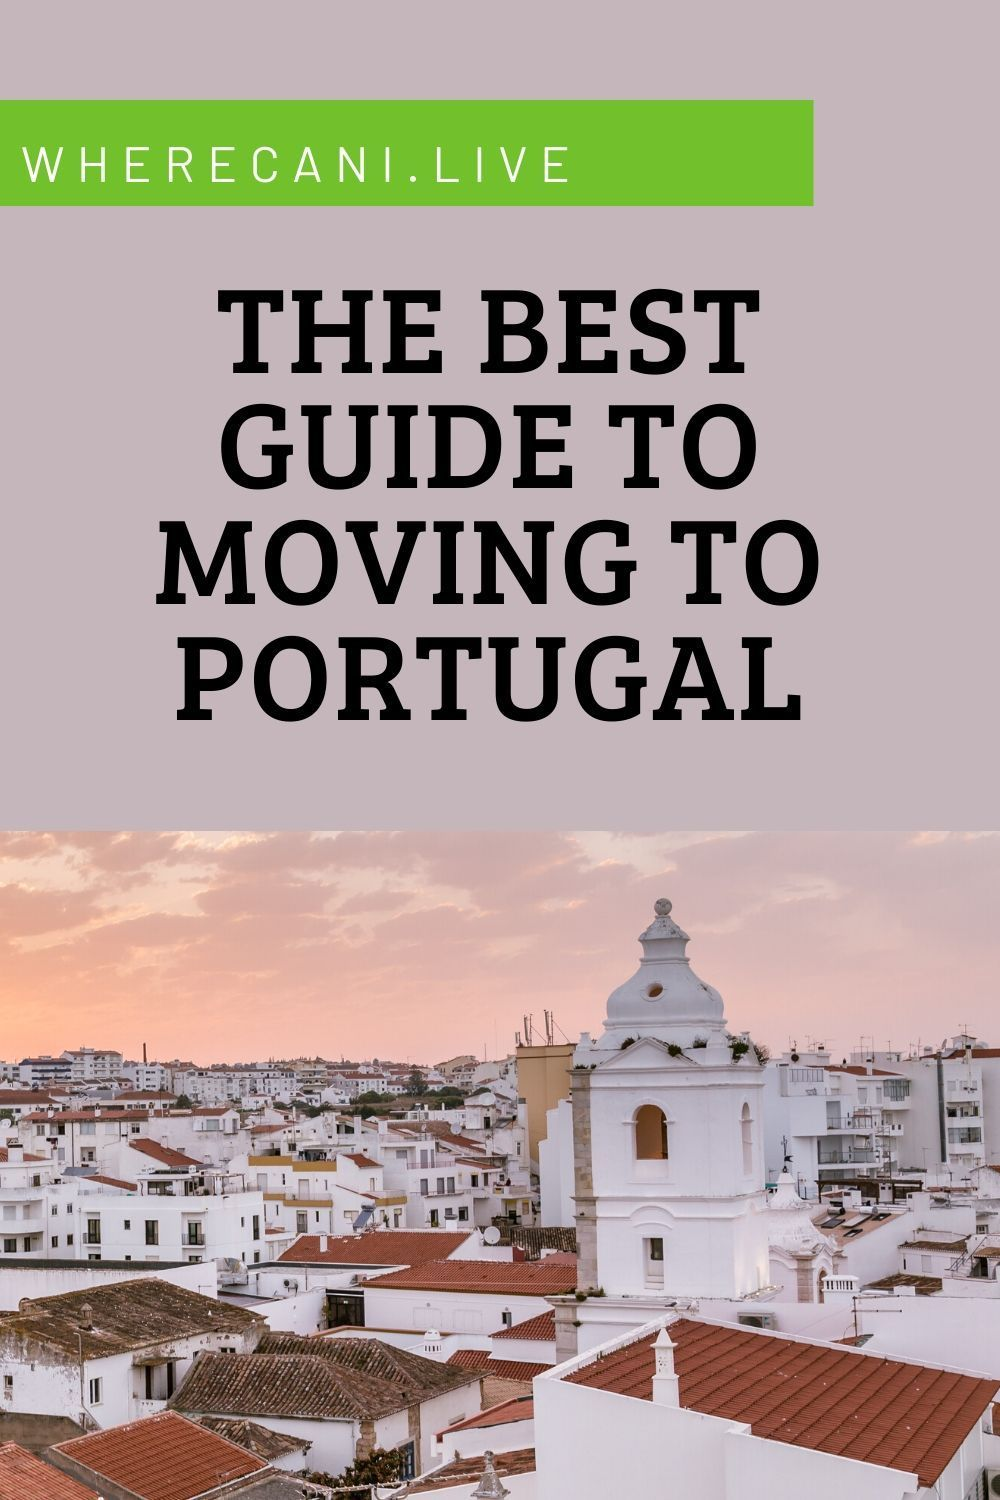 Thinking of moving to Portugal? We have the best g